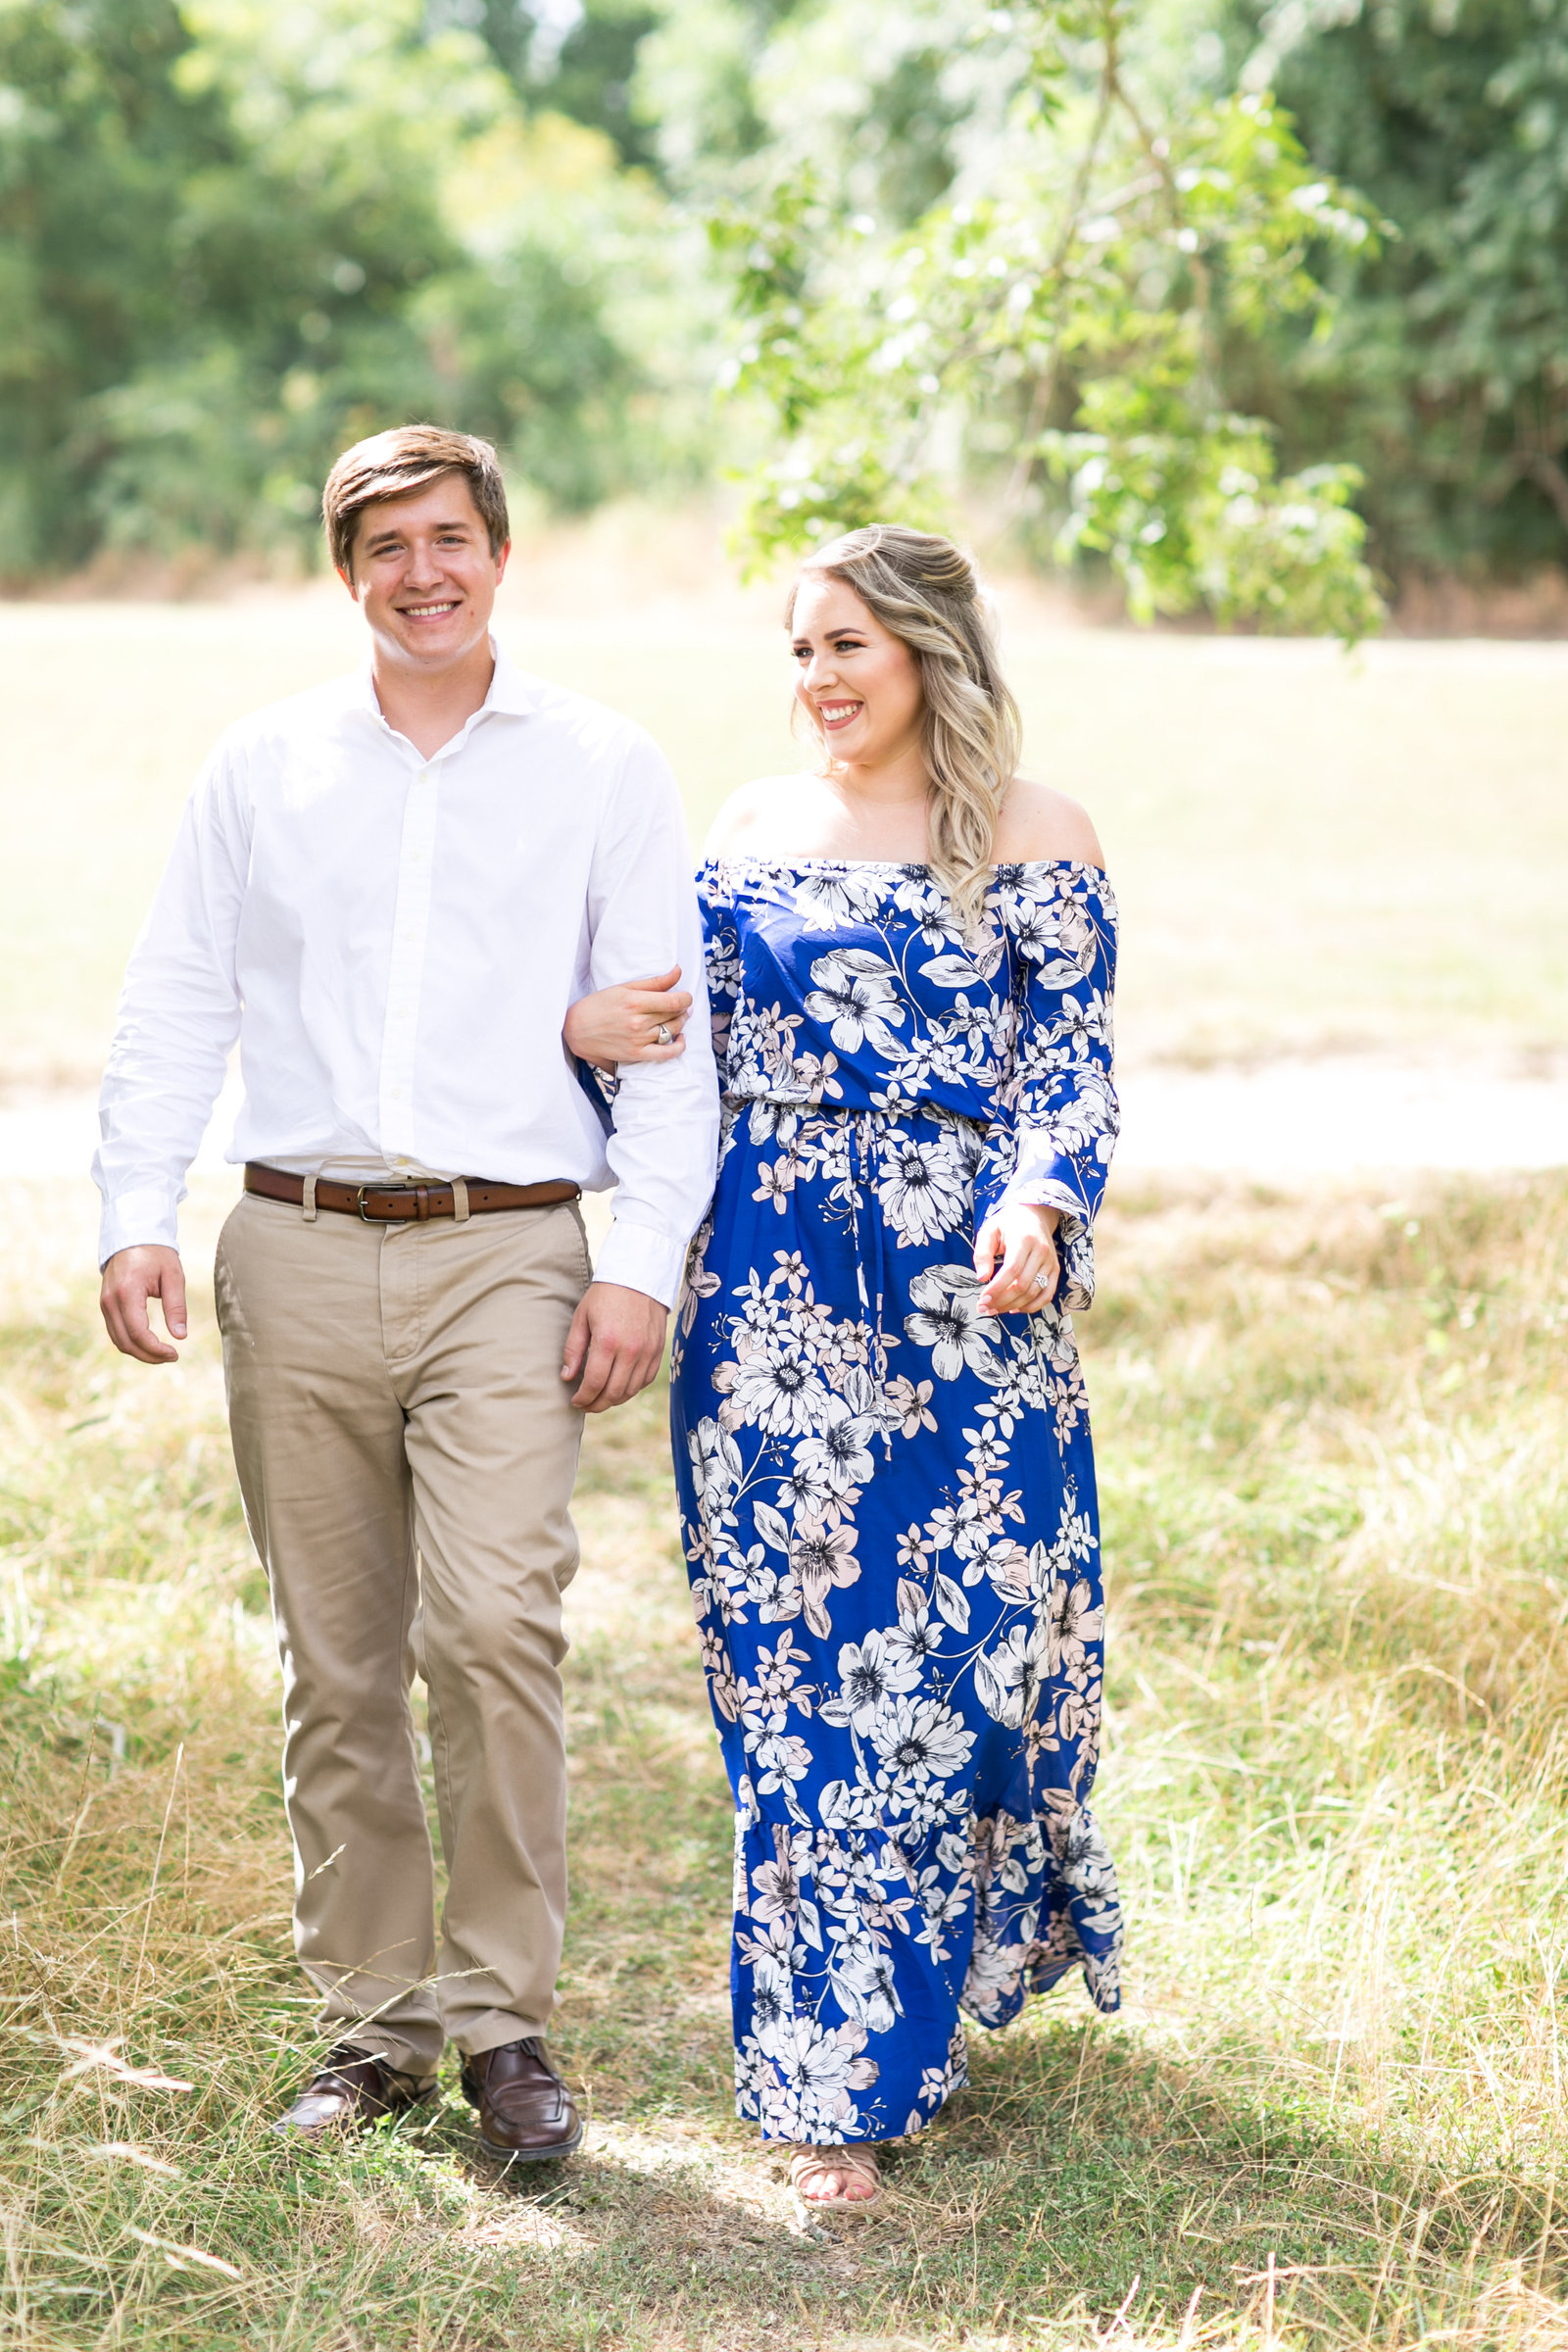 GALLERY-Megan-Adam-Engagement-Session-IH8A882135